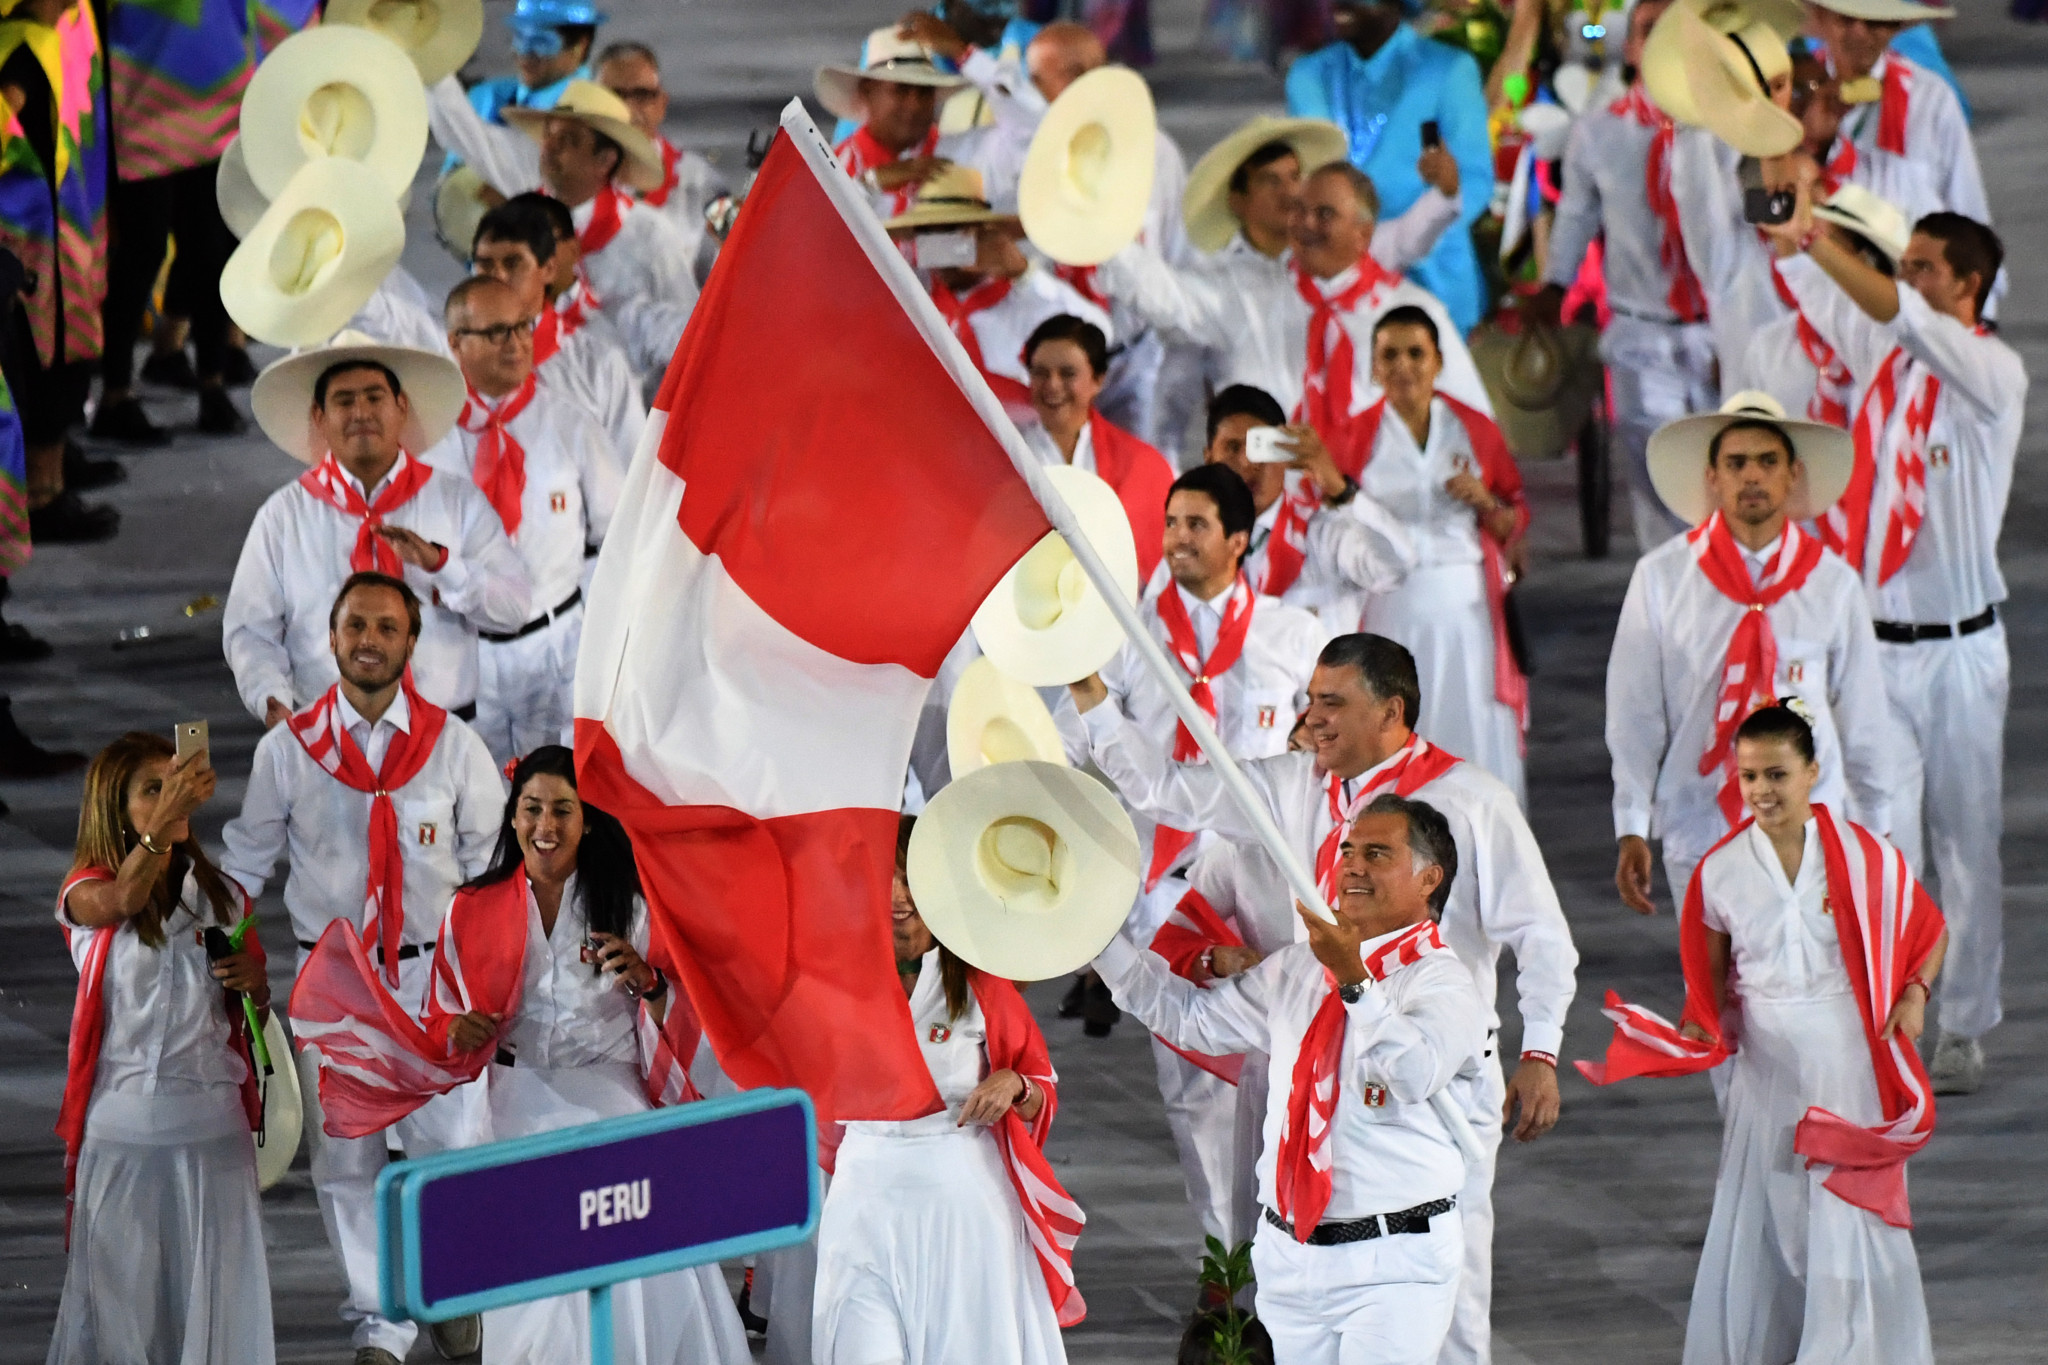 Francisco Boza Dibós pictured carrying the Peruvian flag at the Opening Ceremony of Rio 2016 ©Getty Images